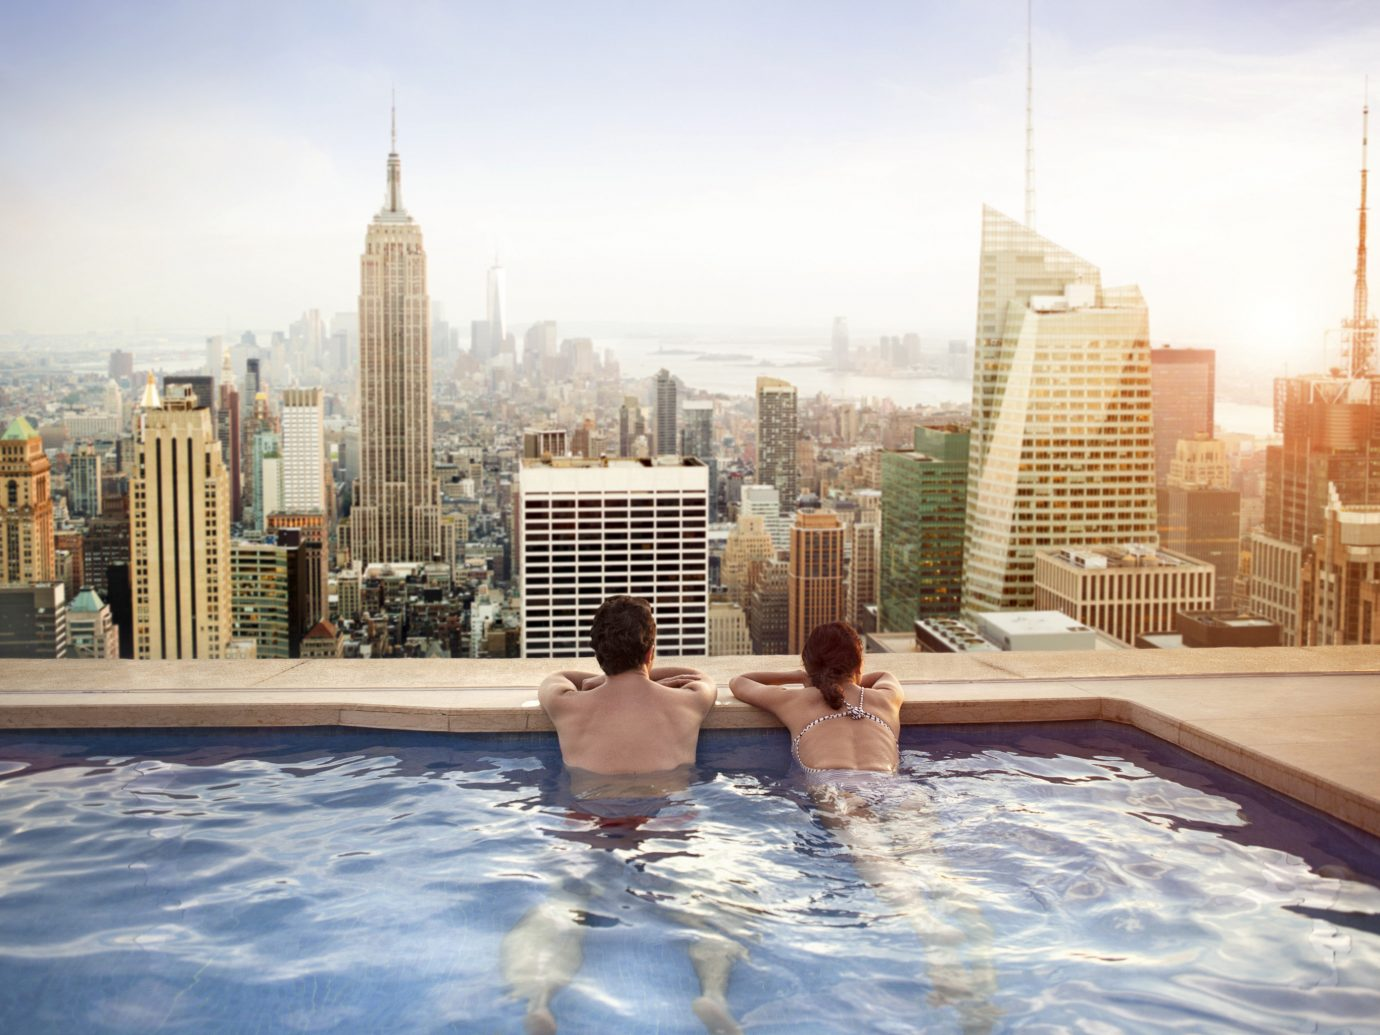 Travel Tips Trip Ideas sky outdoor City human settlement skyscraper skyline Downtown plaza cityscape water feature swimming pool reflection